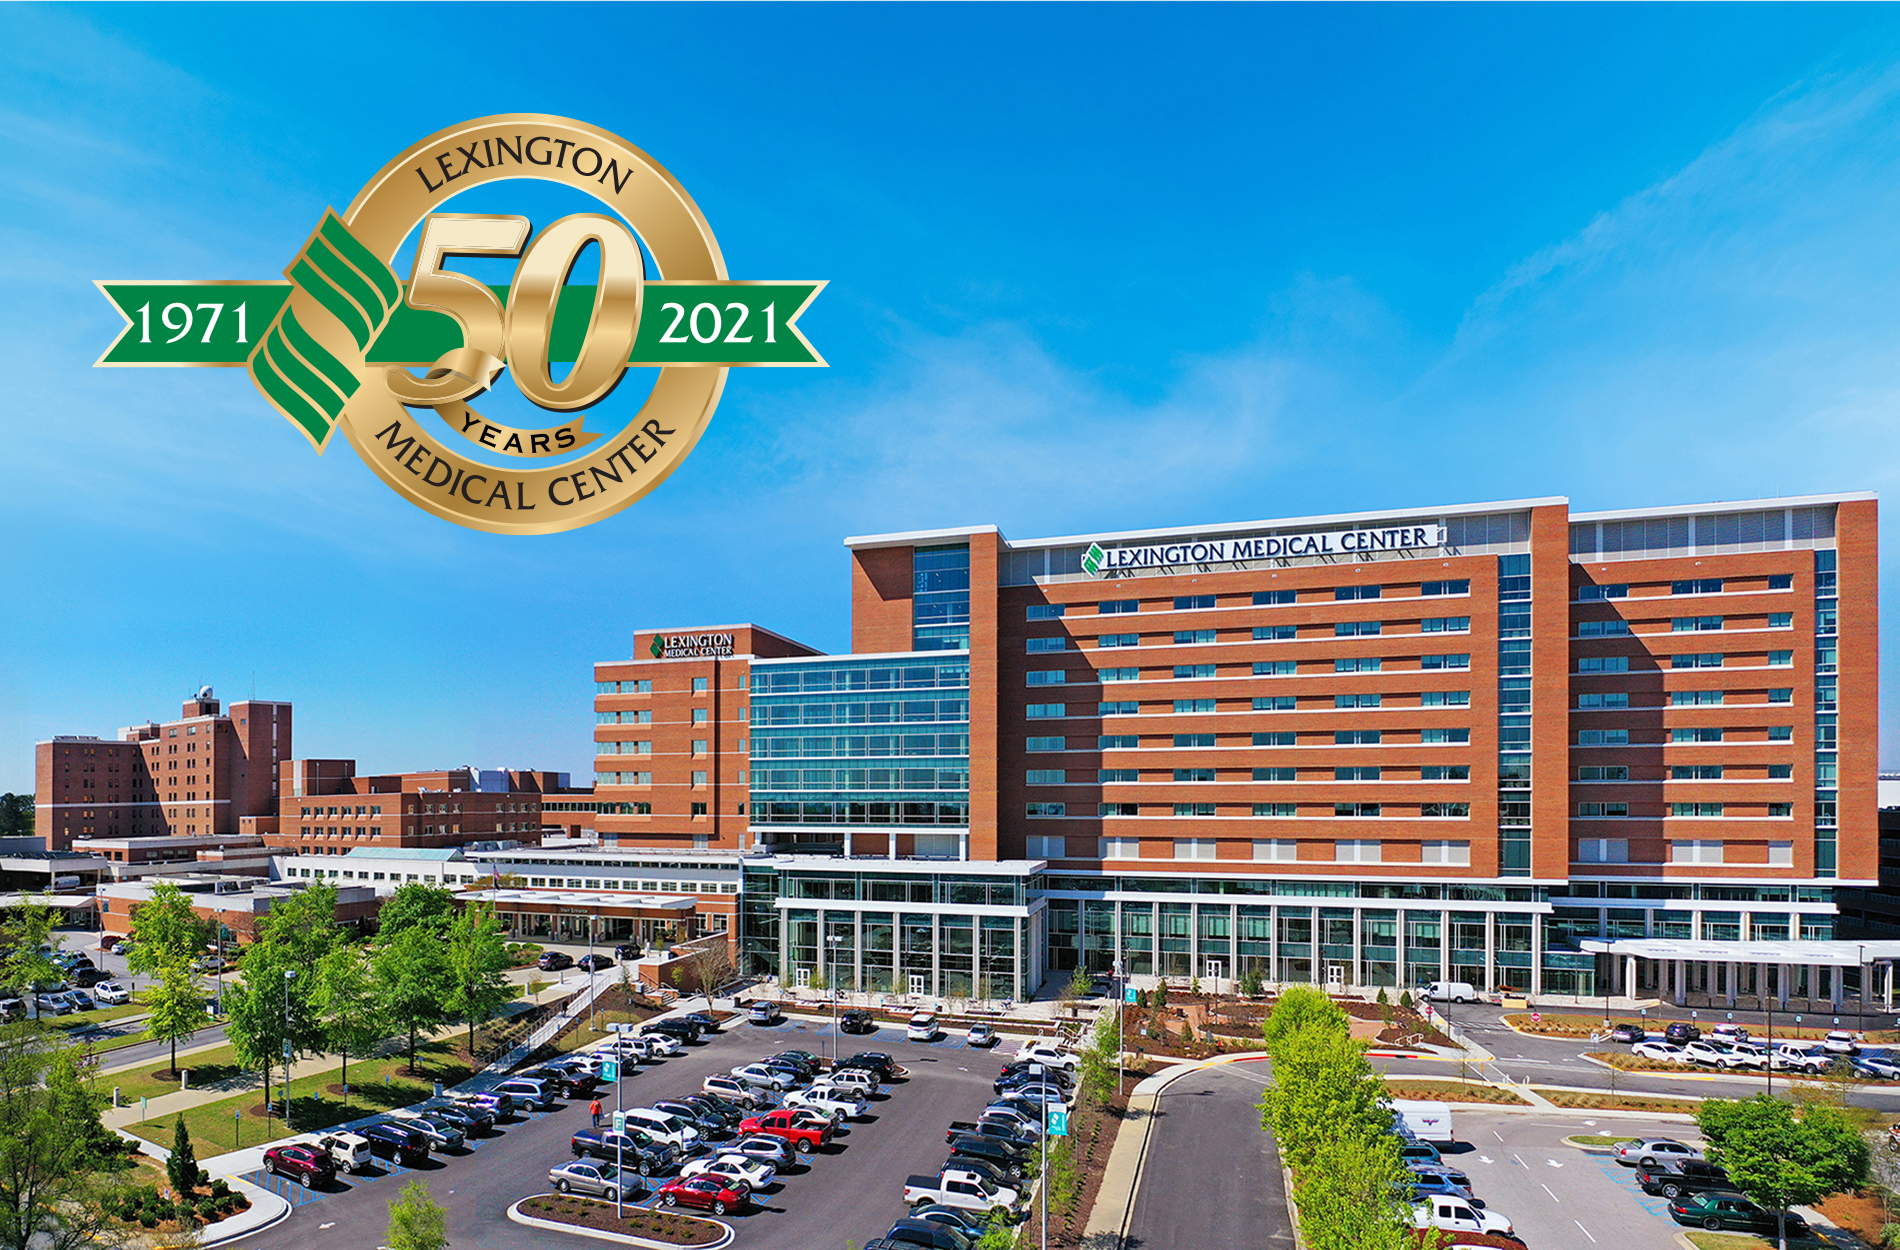 Aerial photo of Lexington Medical Center along with 50th anniversary logo